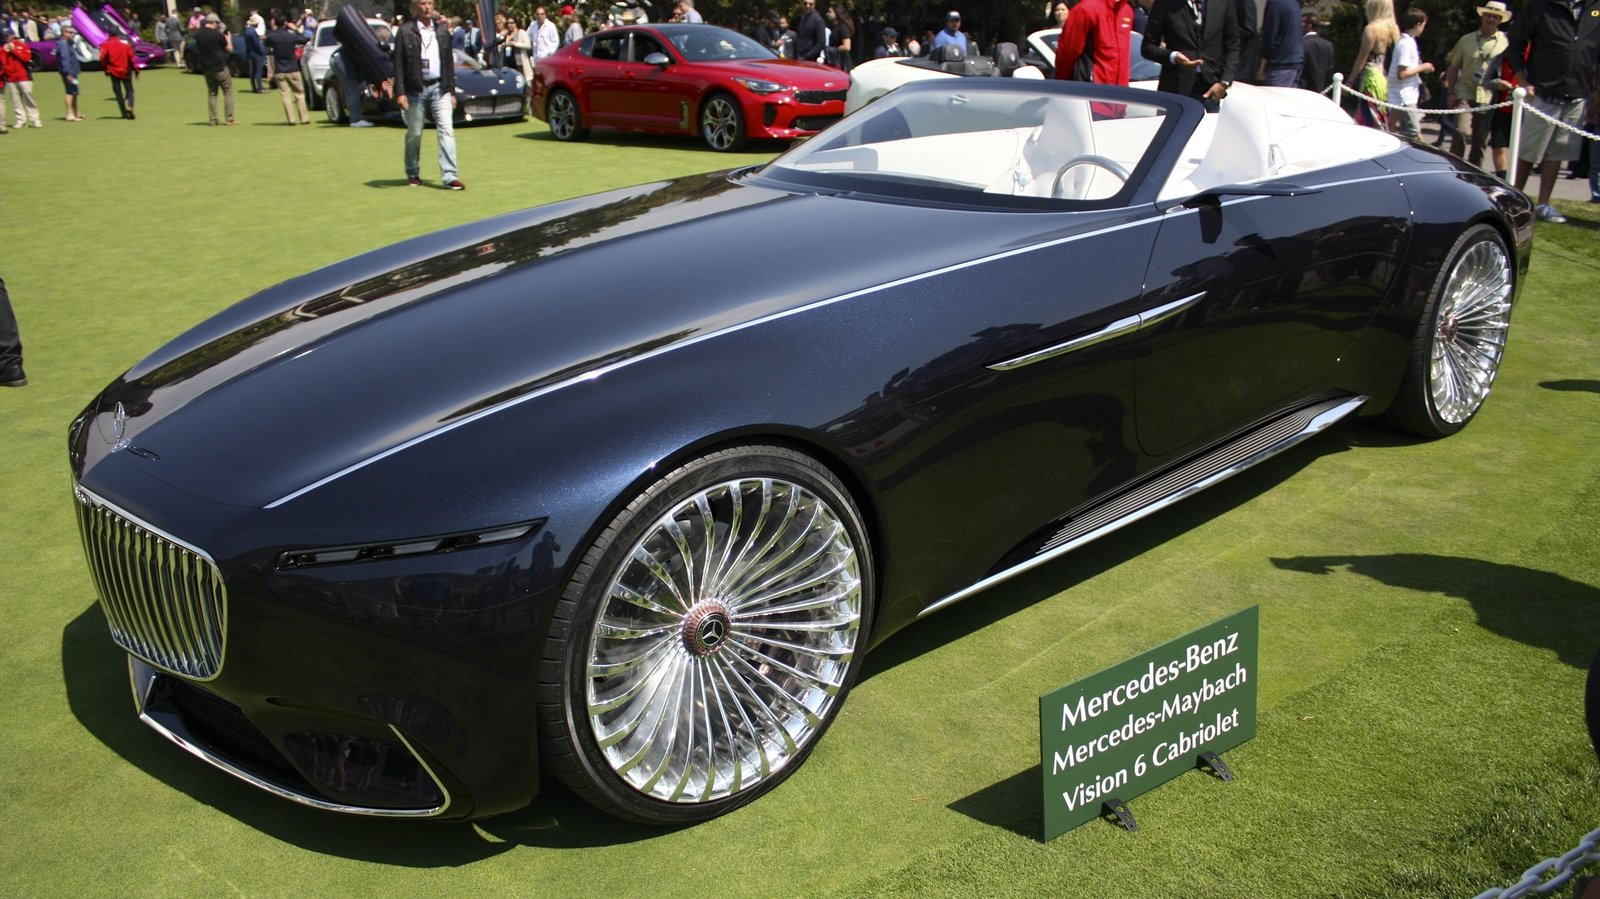 2017 Mercedes Maybach Vision 6 Cabriolet Top Speed